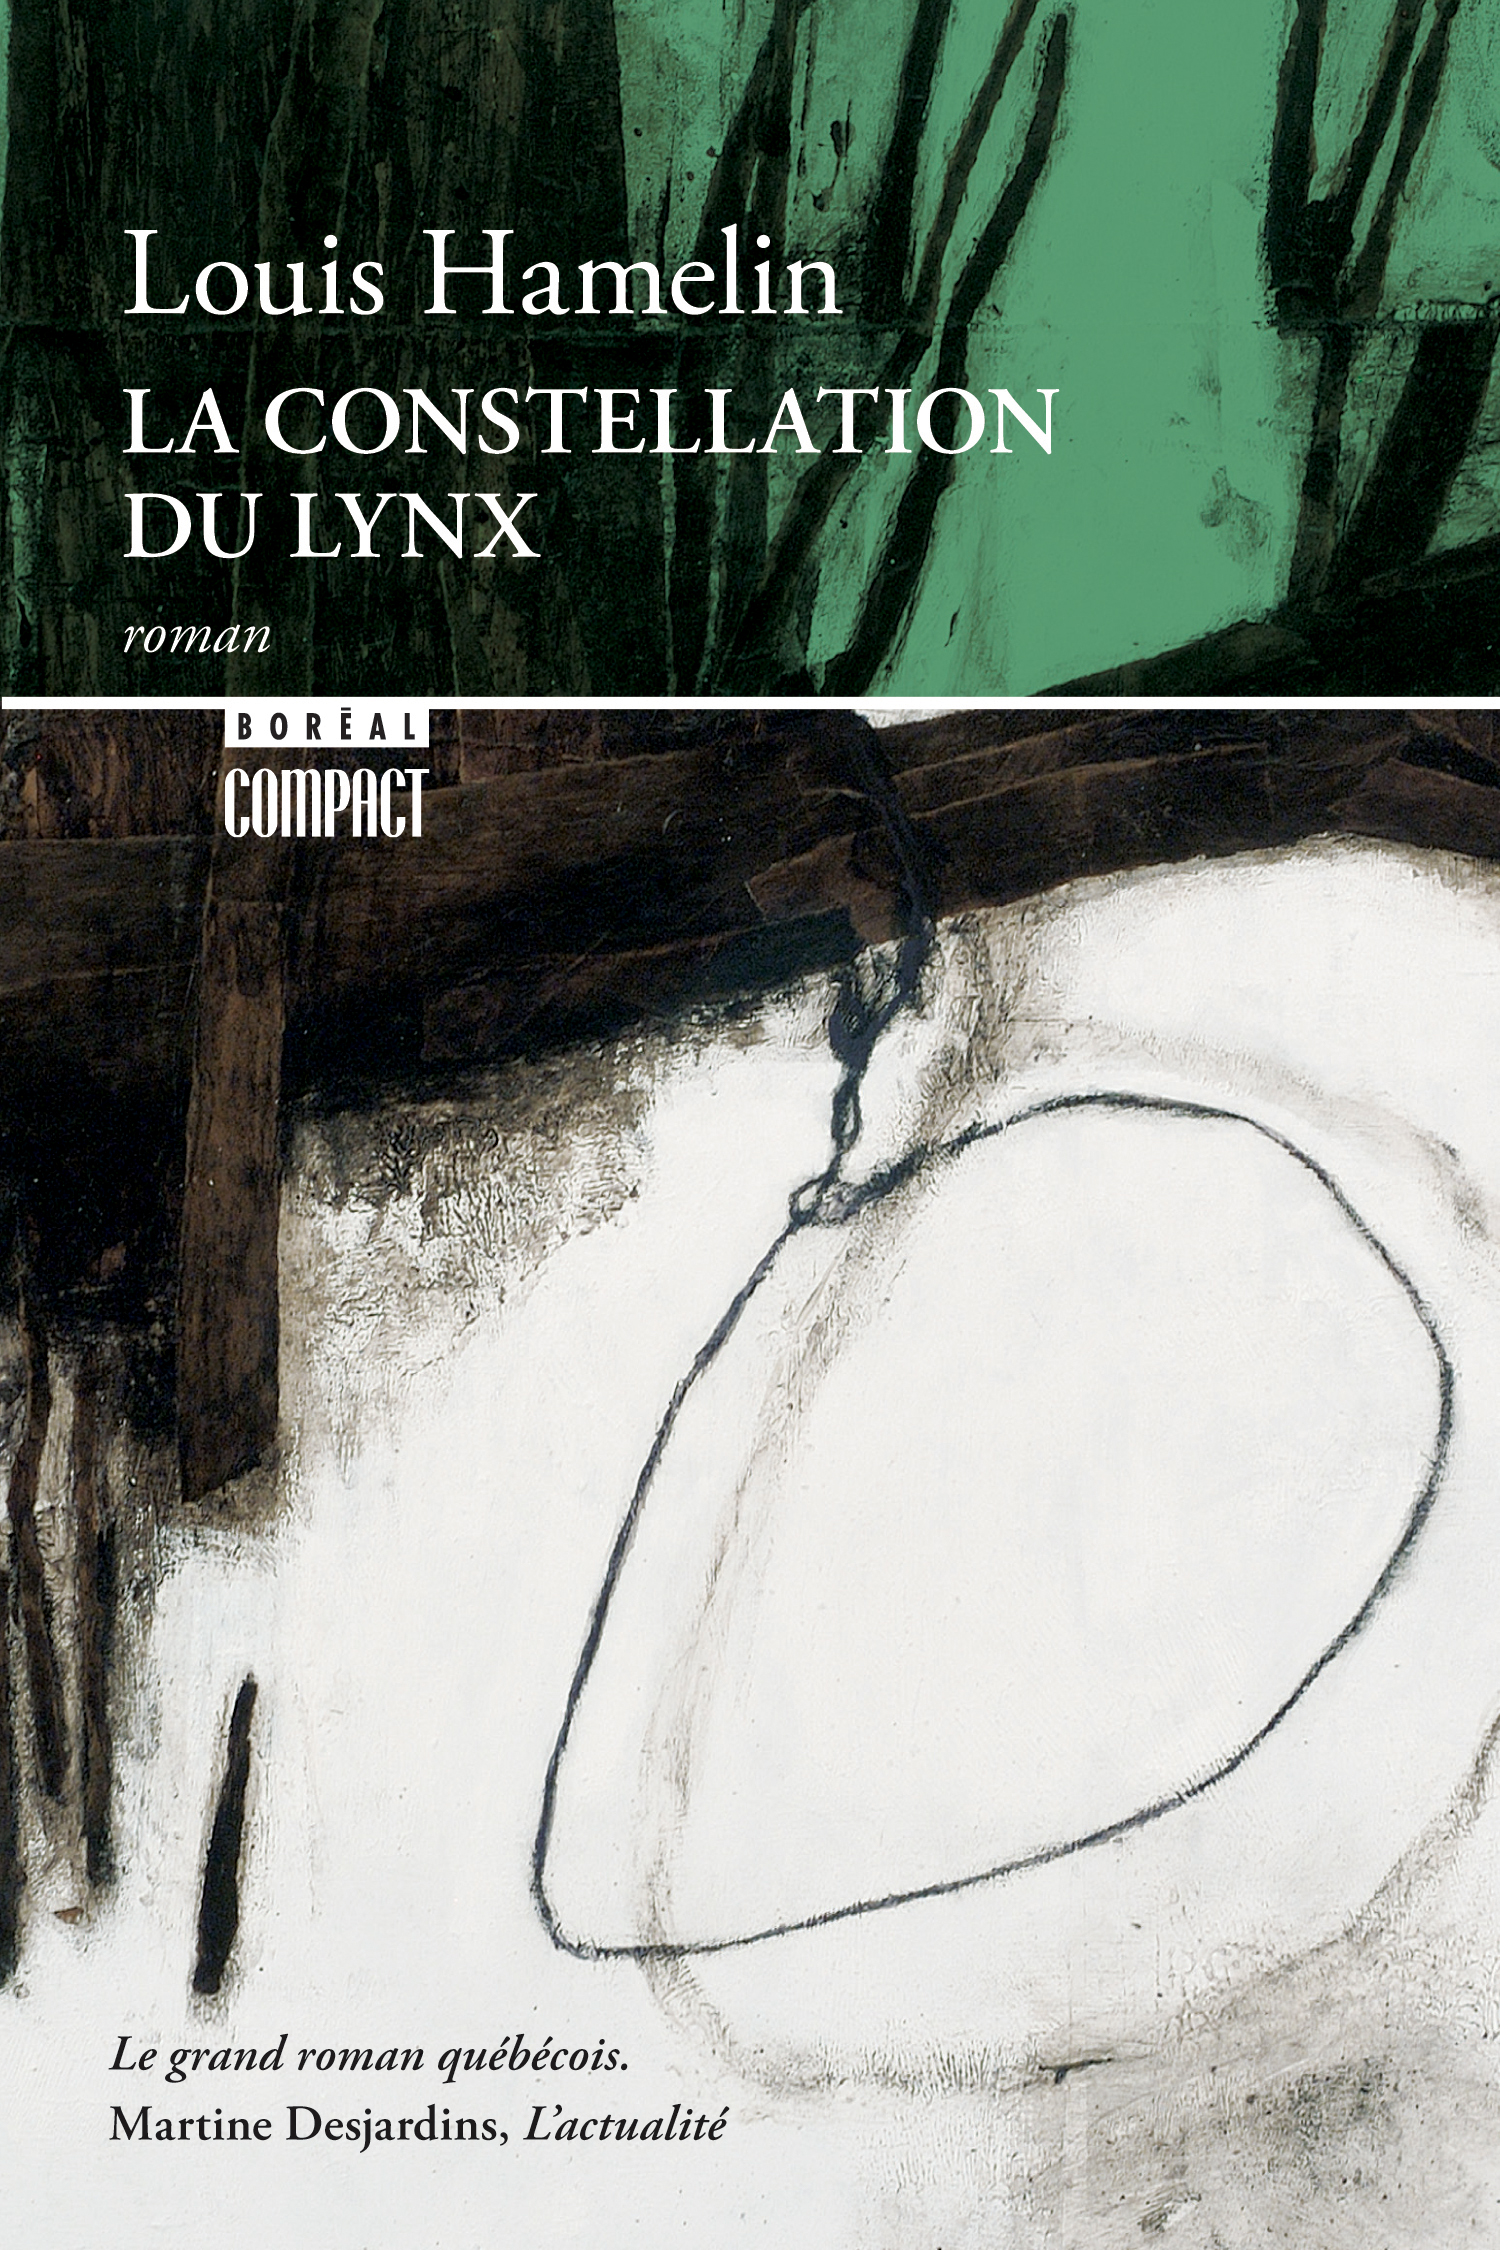 Vignette du livre La constellation du lynx - Louis Hamelin